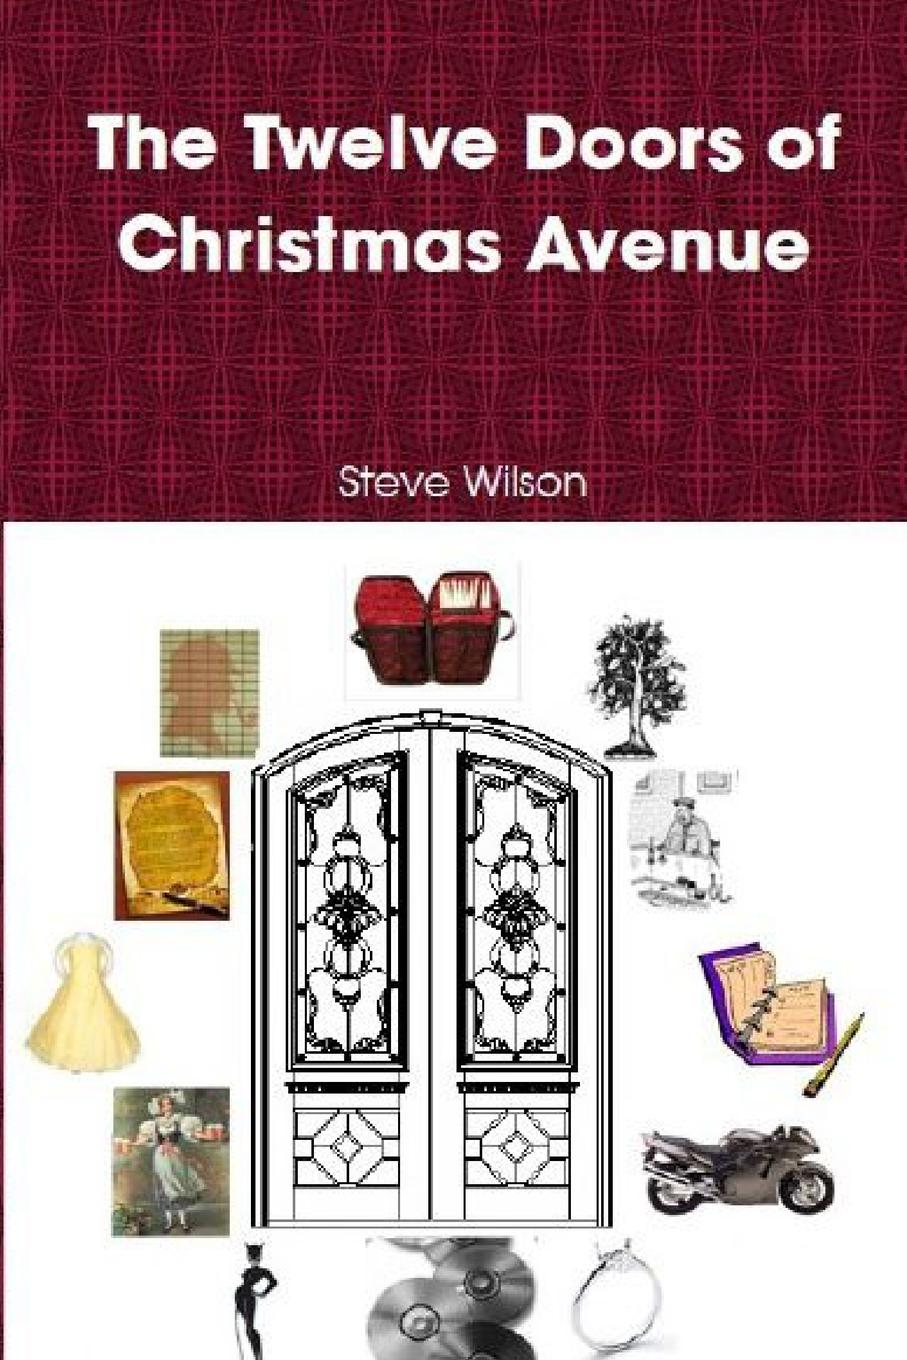 The Twelve Doors of Christmas Avenue